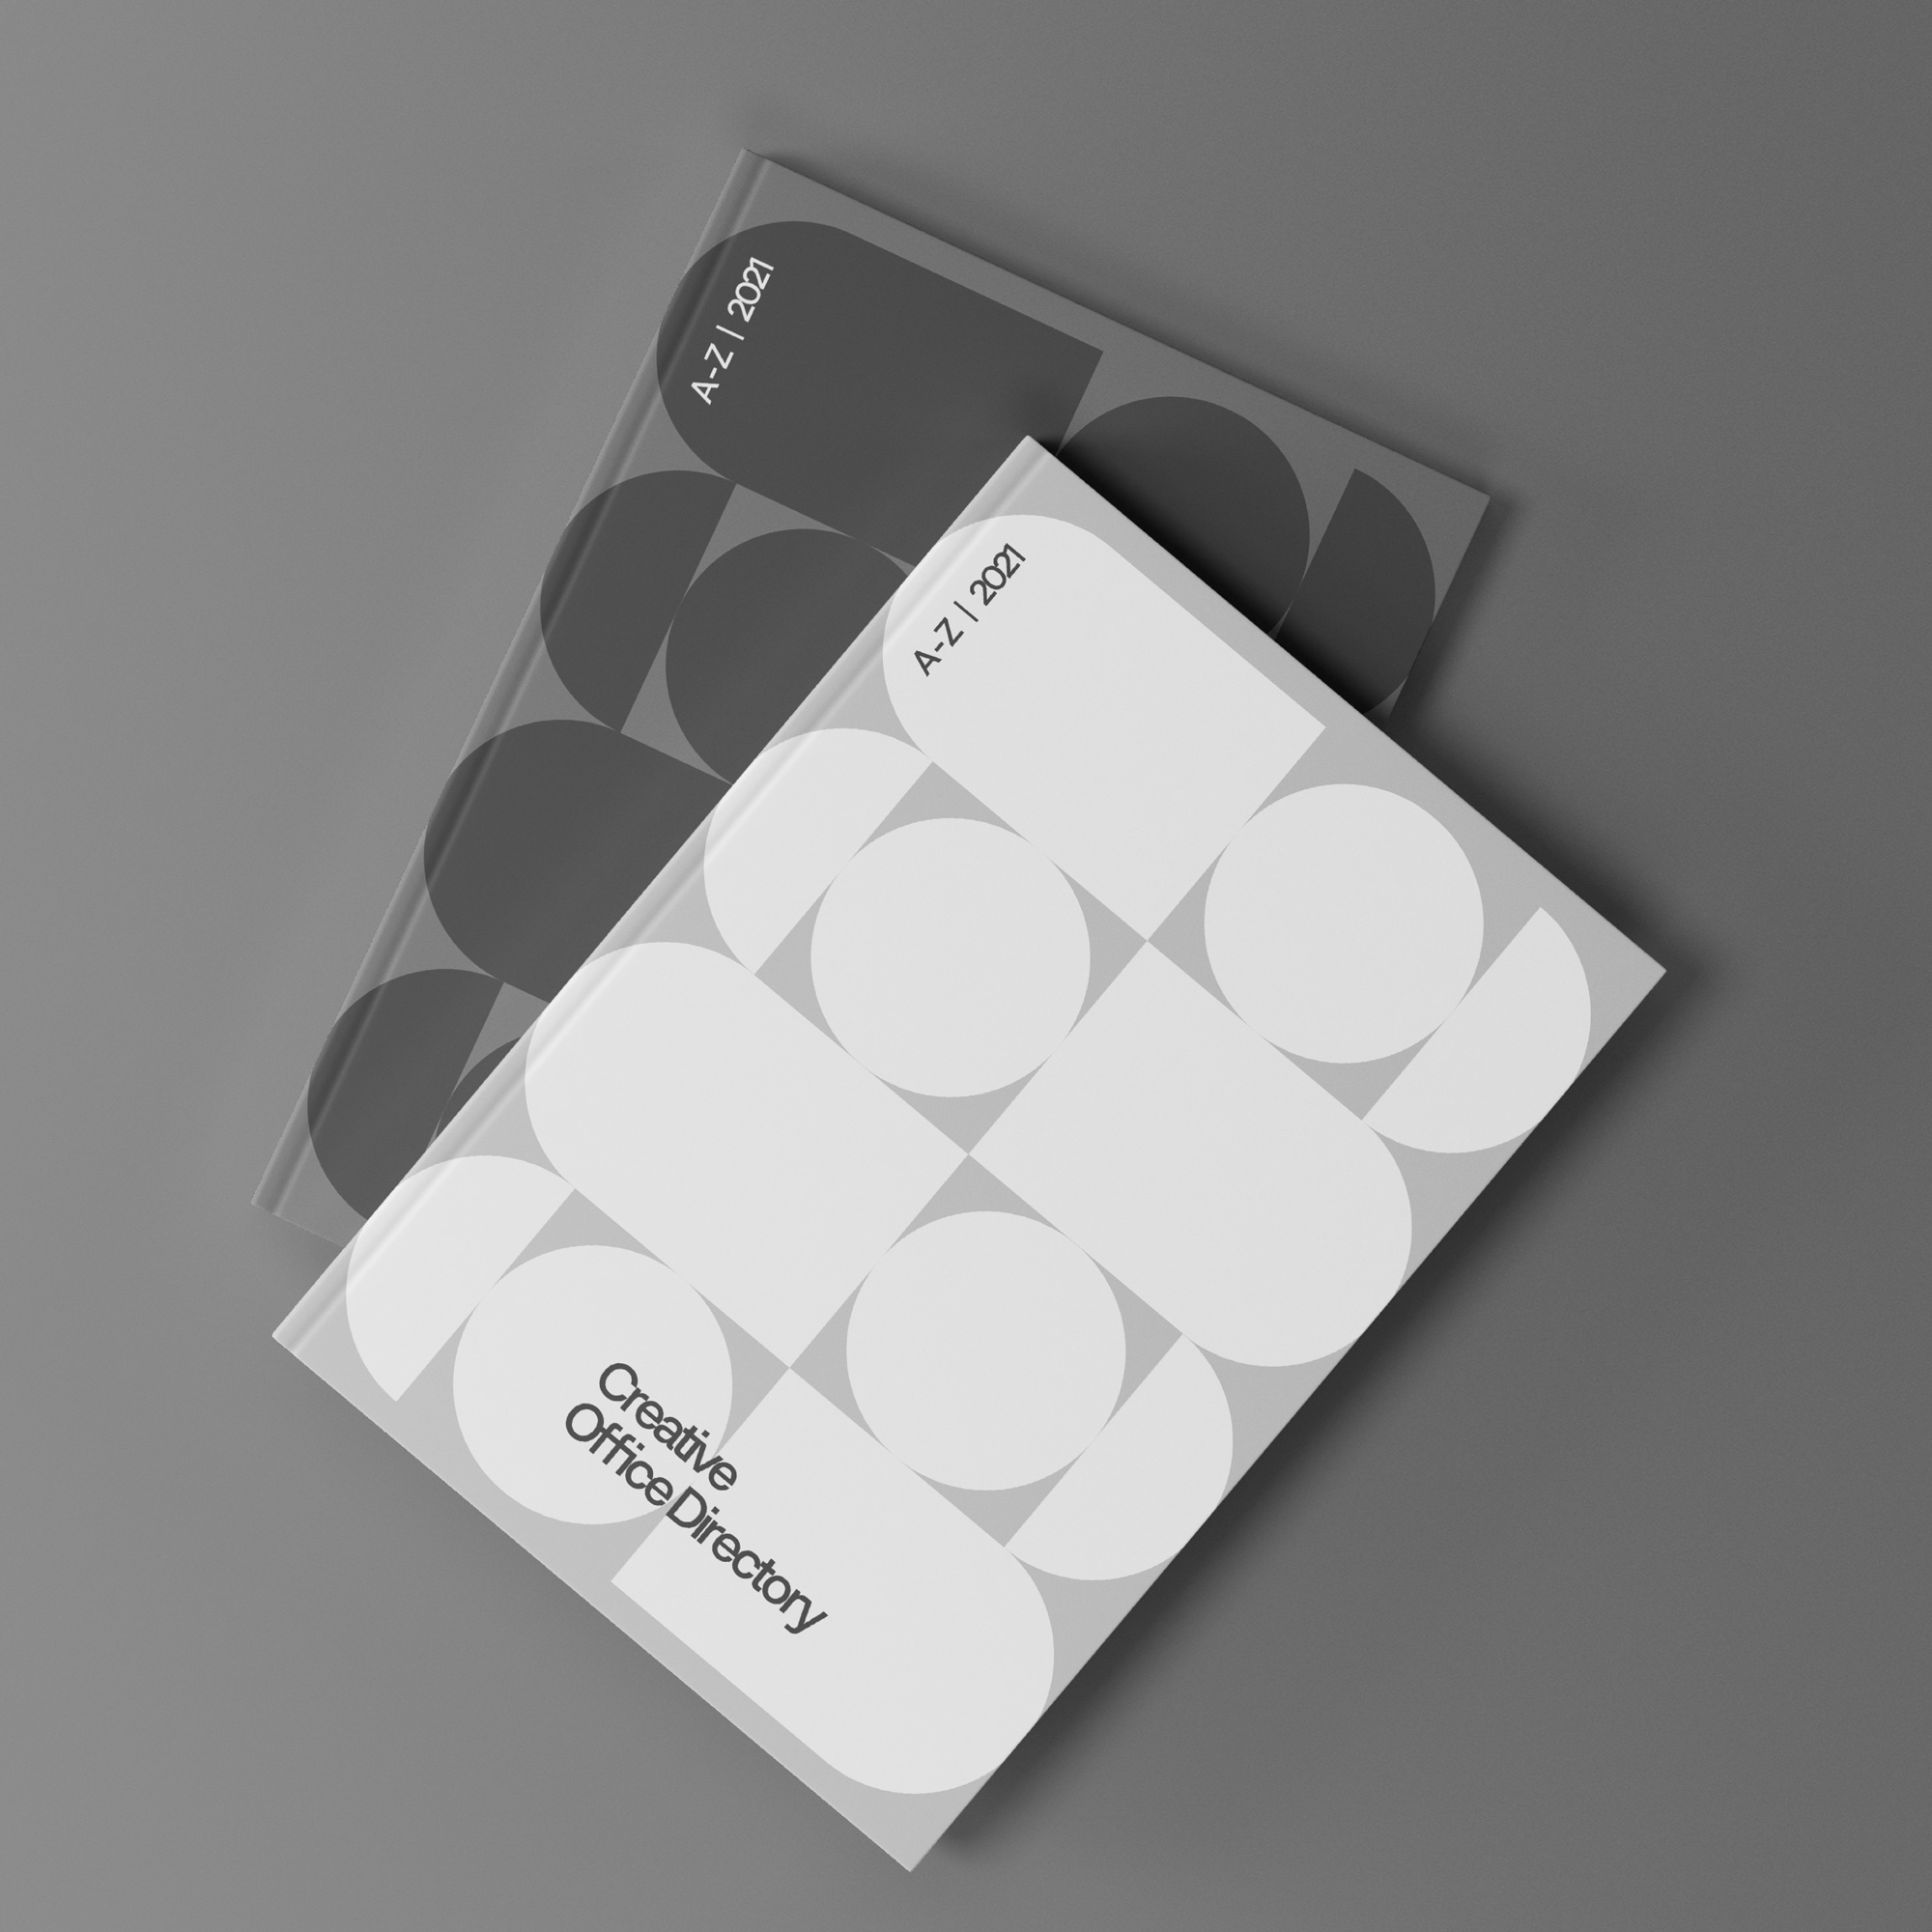 Non-profit Organisation Concept for a Creative Office Directory